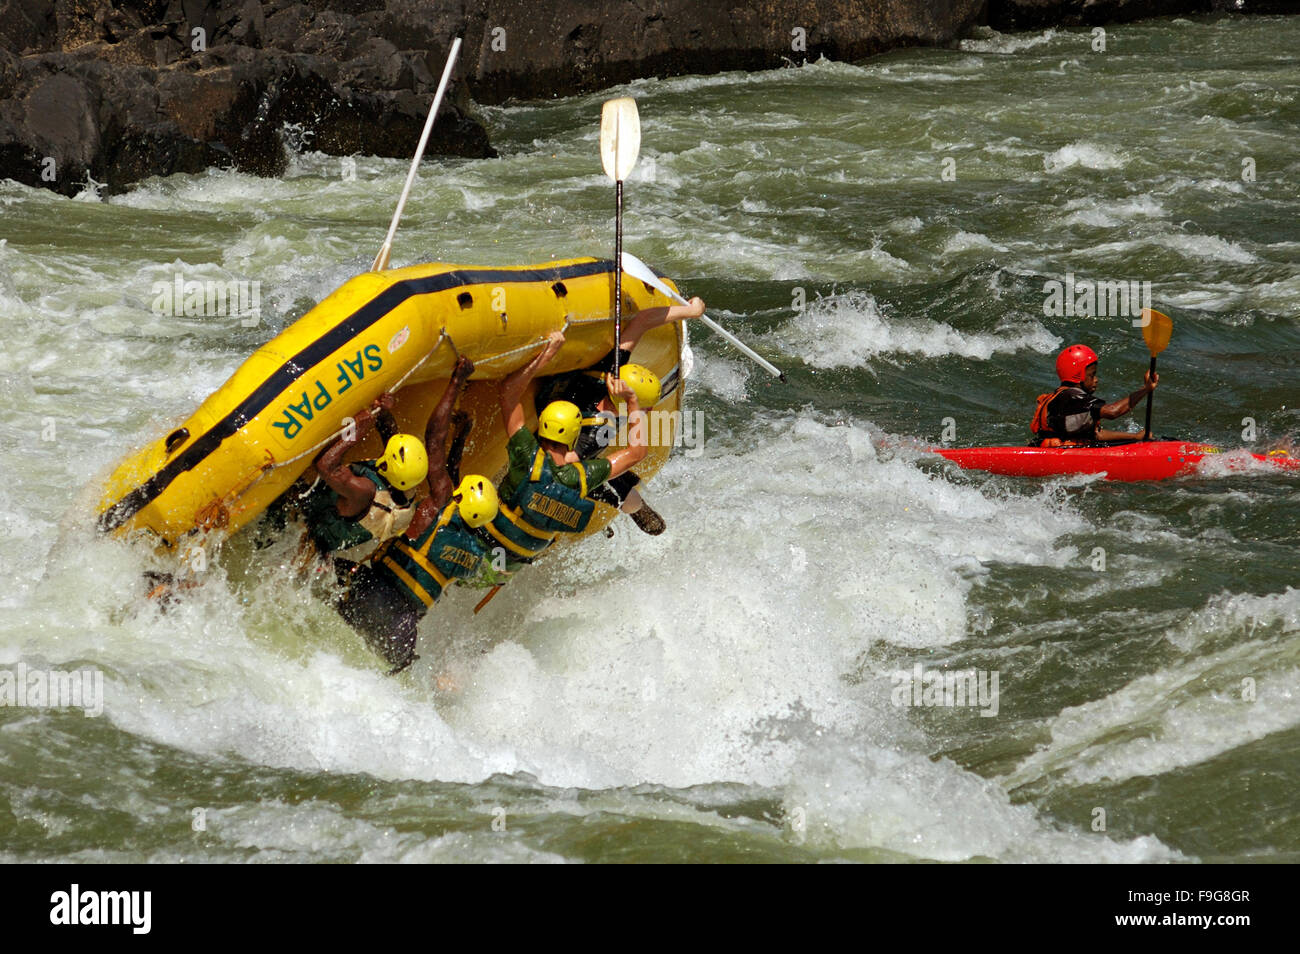 Yellow raft flipping on a wave at The Boiling Pot on the Zambezi River in Zambia Stock Photo